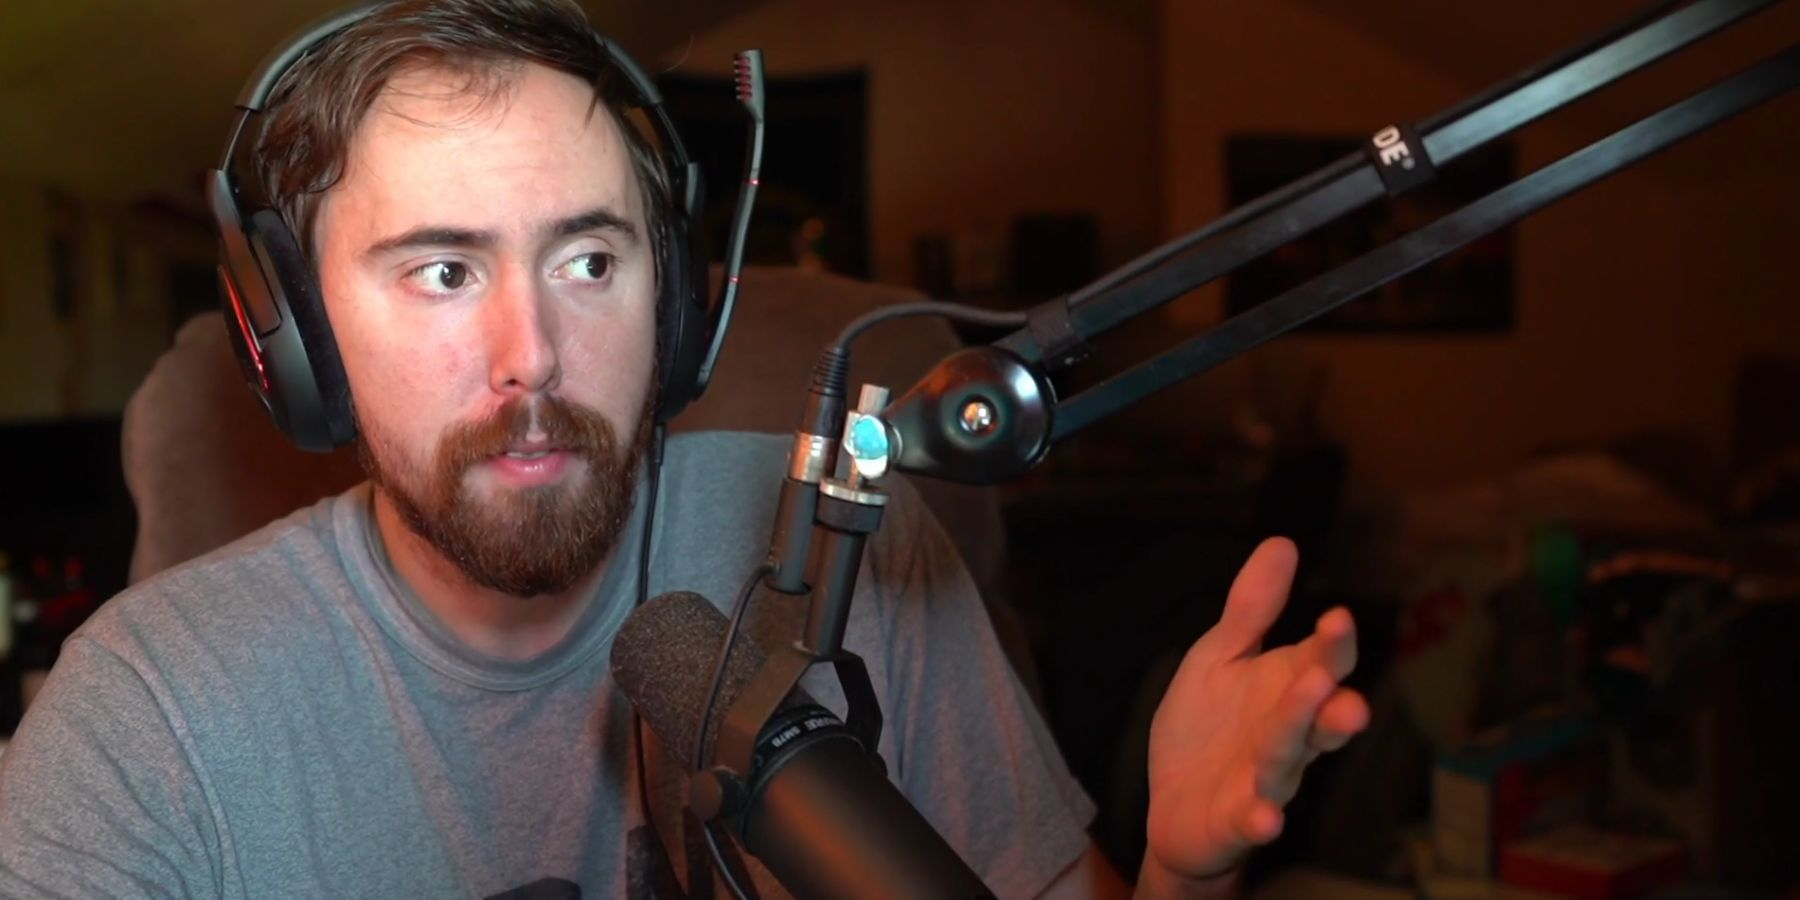 Streamer Asmongold Doesn't Think Day Off Twitch Movement Will Work